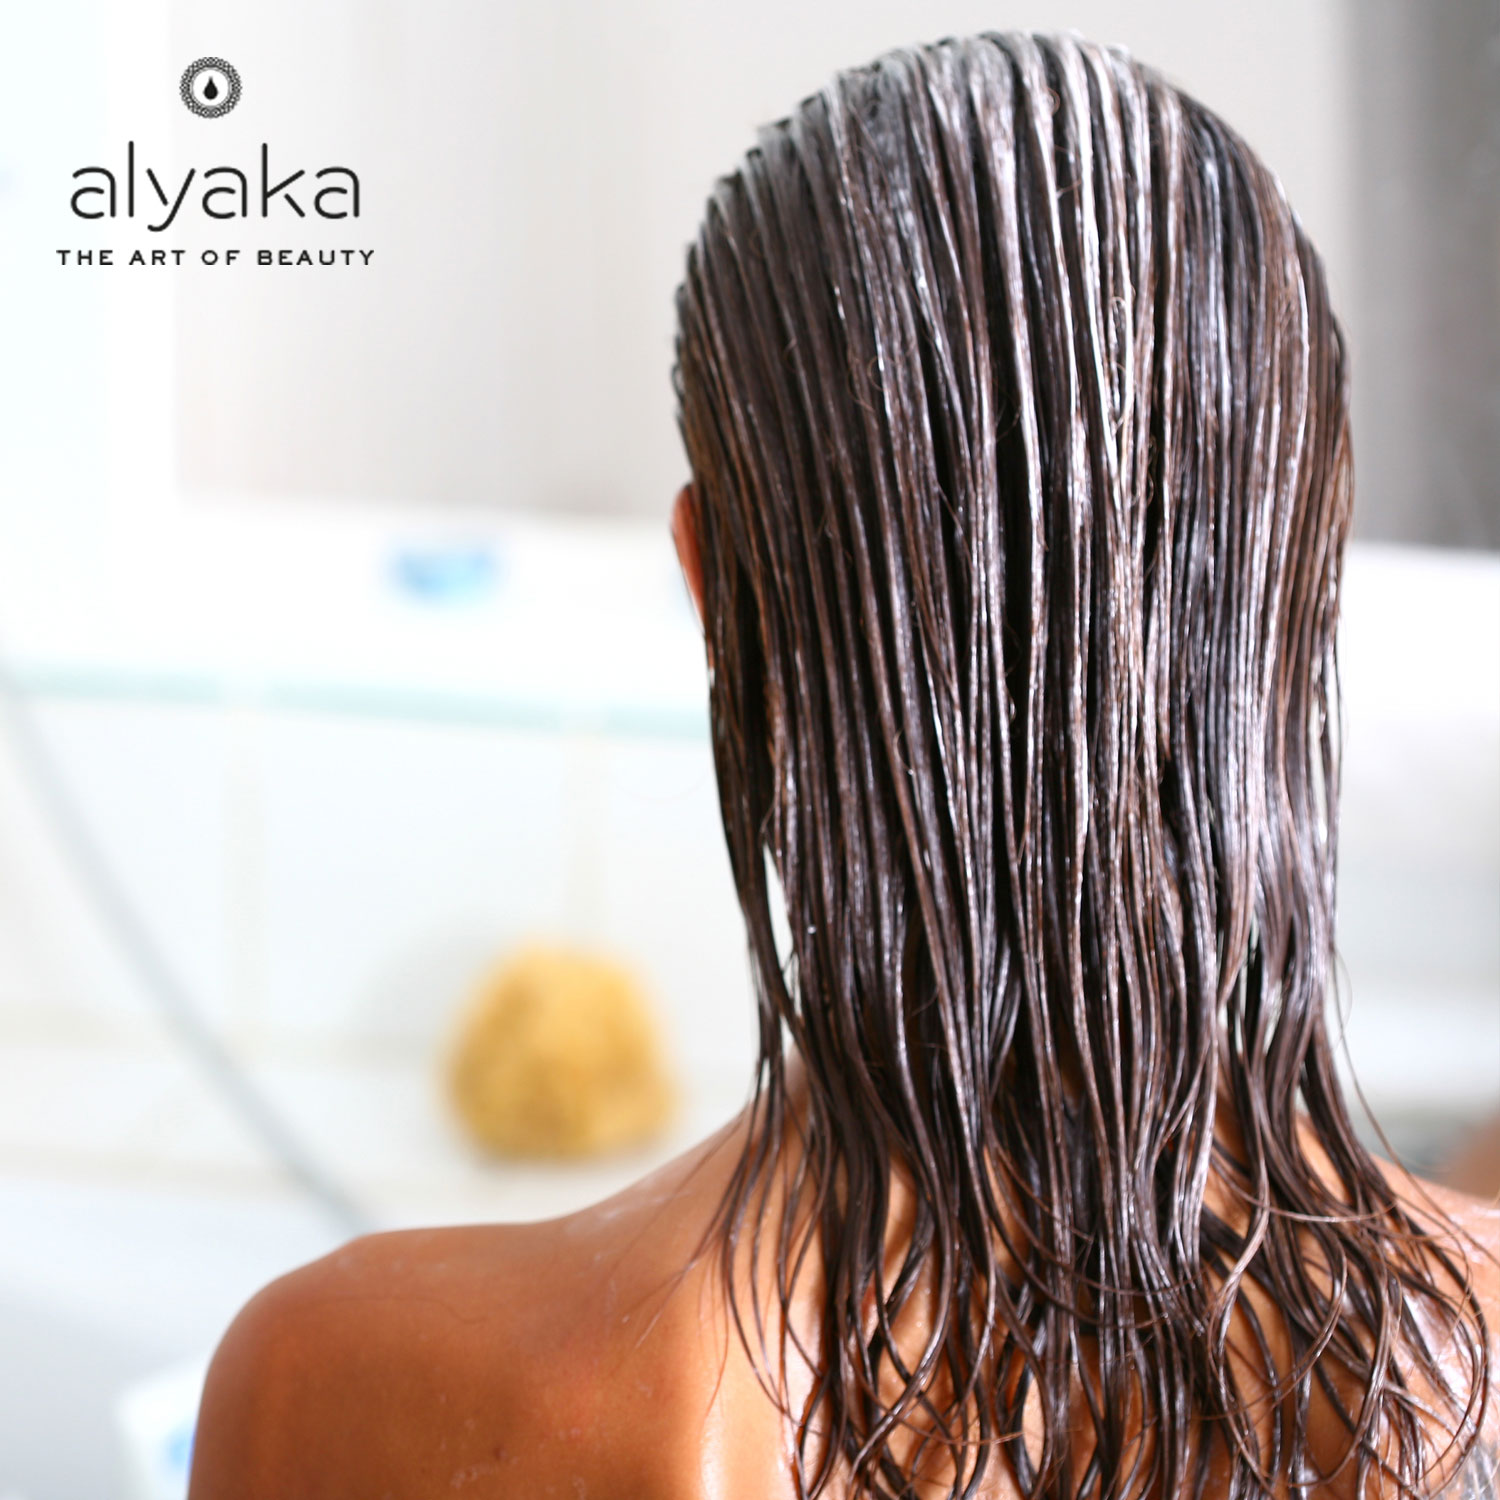 Use Hair Mask and Oil